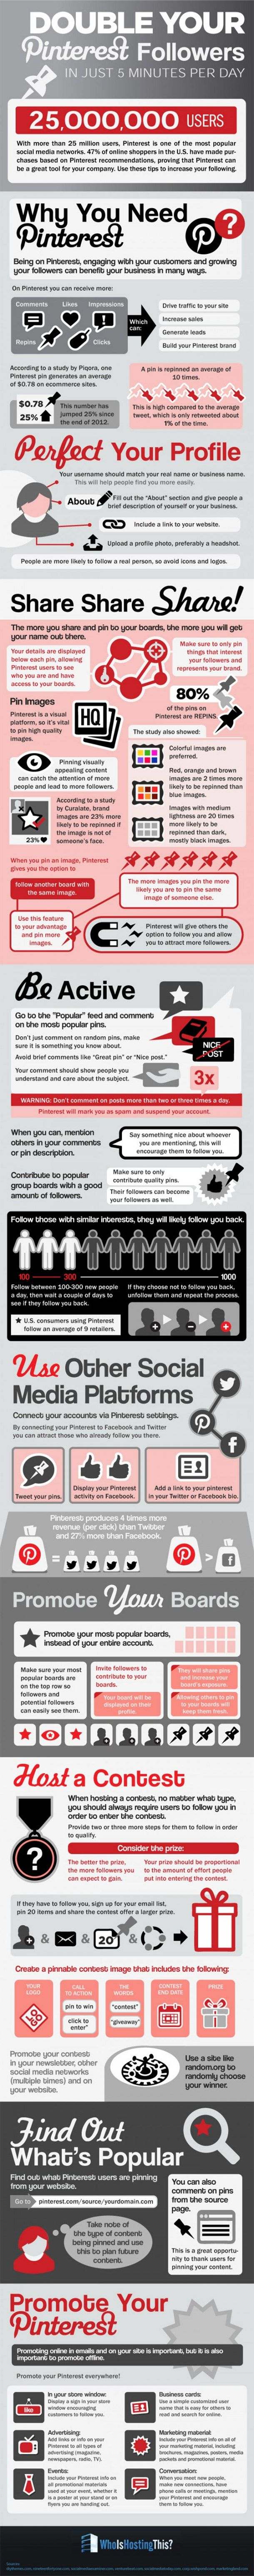 How You Can Get More Pinterest Followers (Infographic)